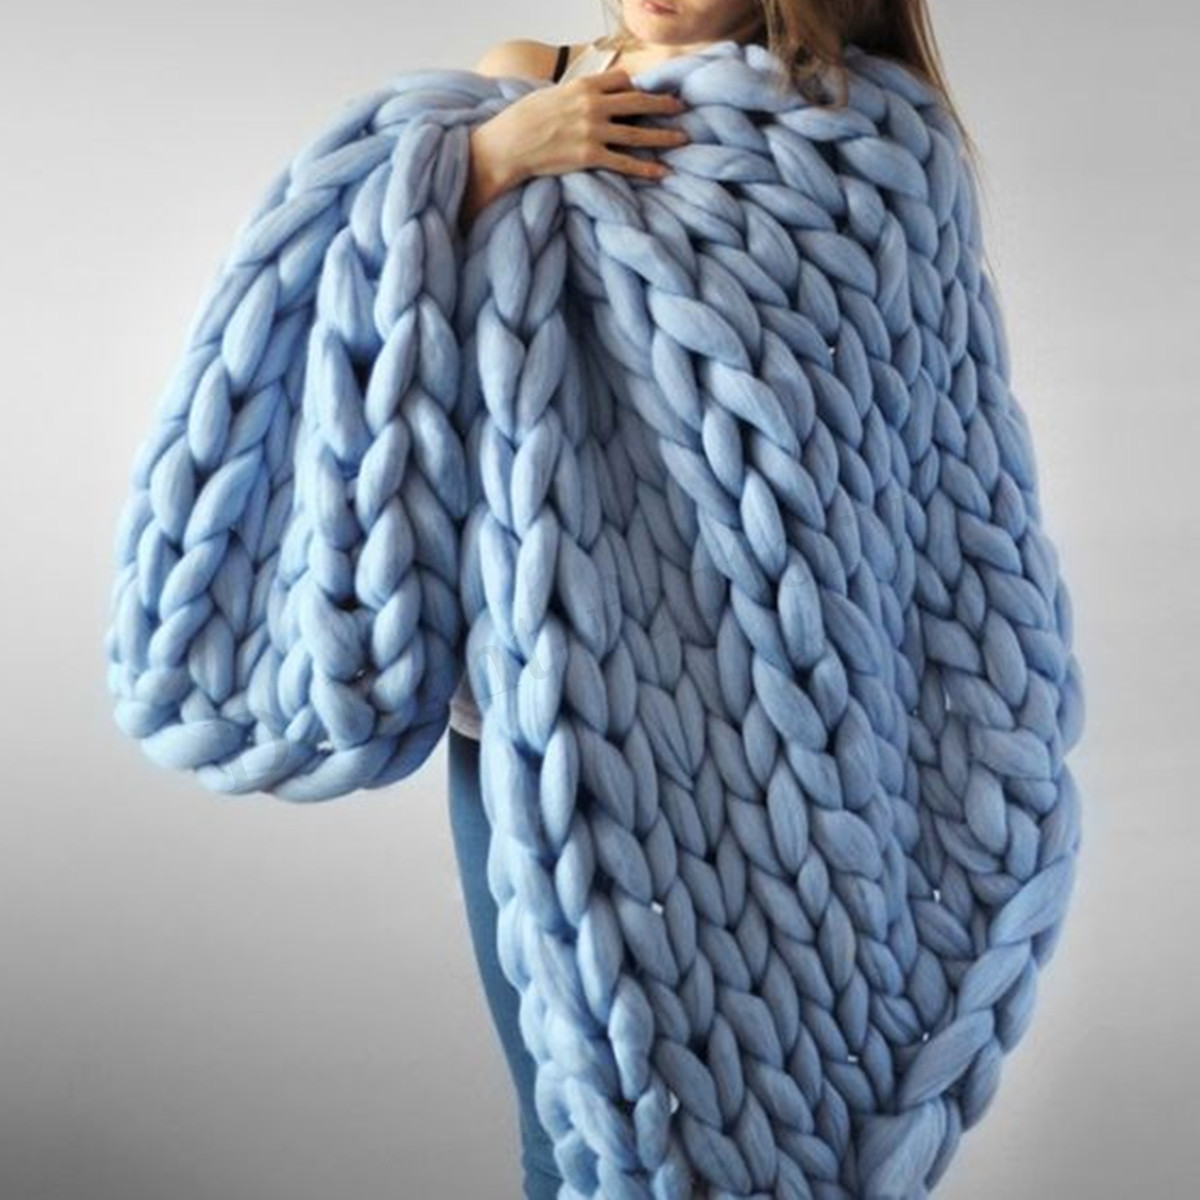 Thick Yarn Blanket Inspirational soft Warm Hand Chunky Knit Blanket Thick Yarn Wool Of Perfect 41 Images Thick Yarn Blanket